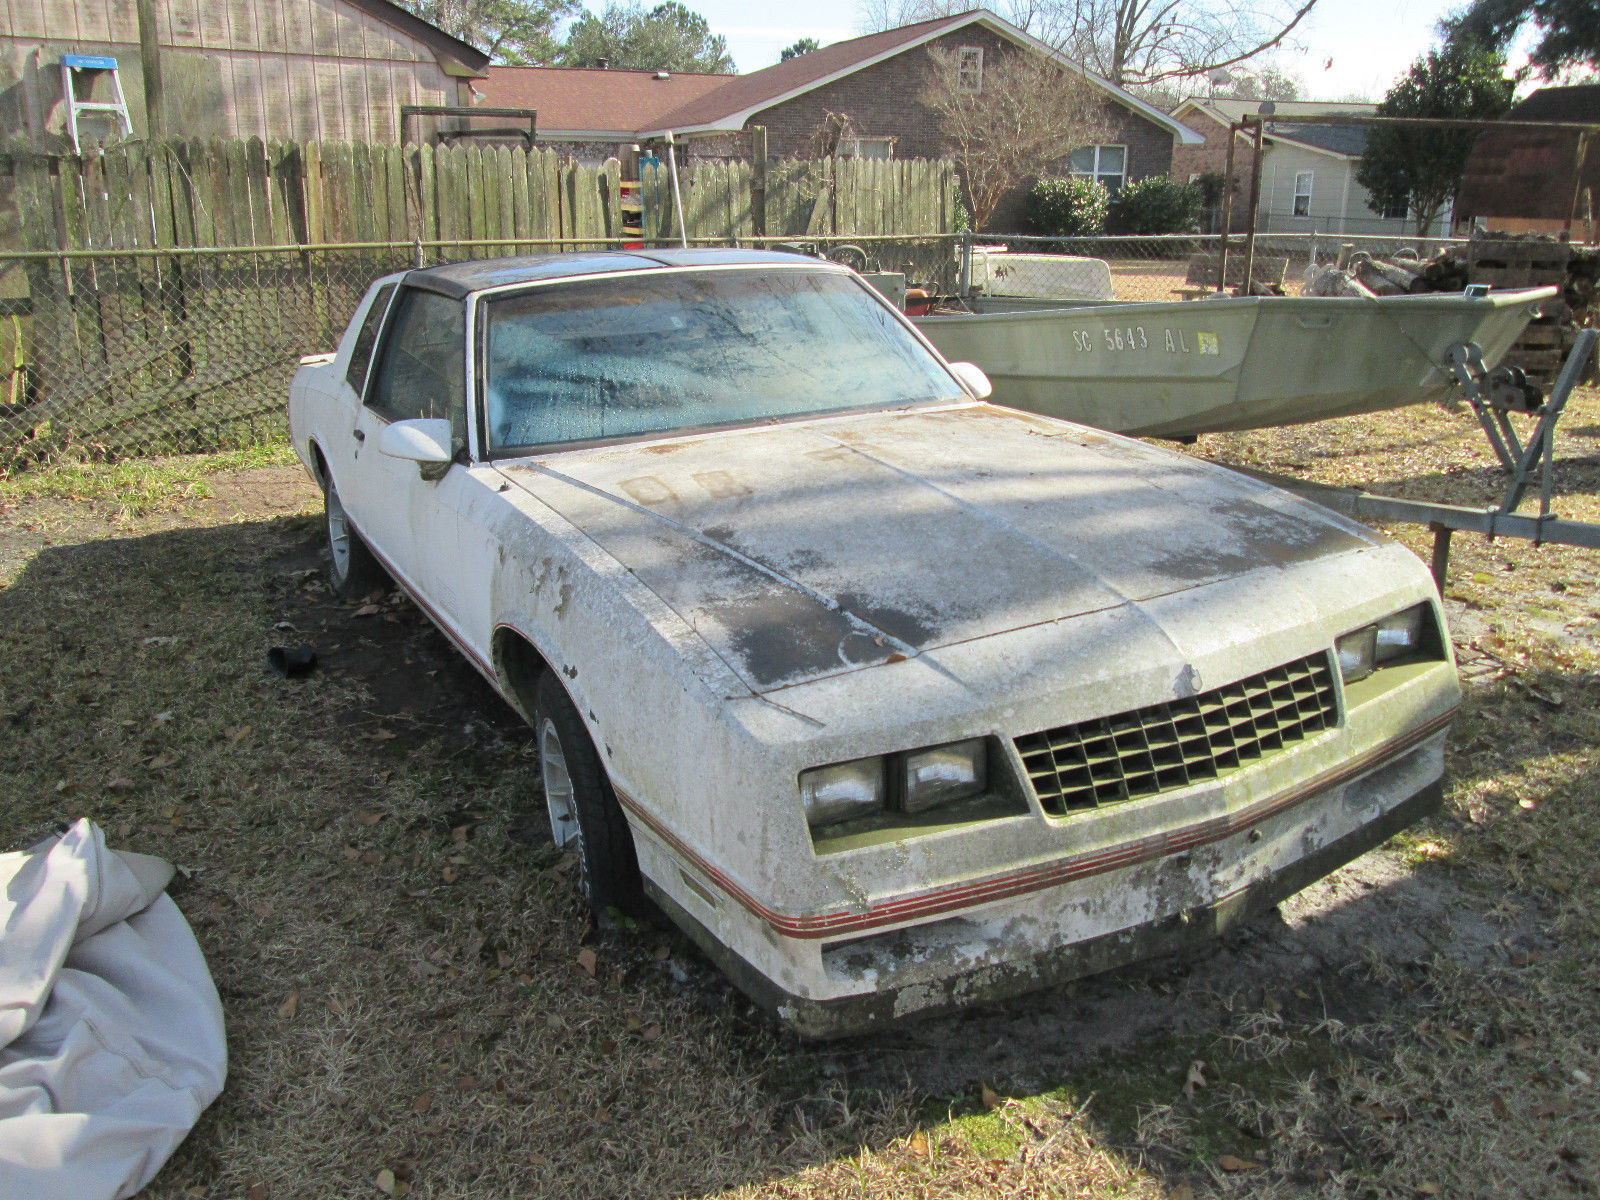 1987 Chevrolet Monte Carlo SS Aerocoupe As is for parts or to